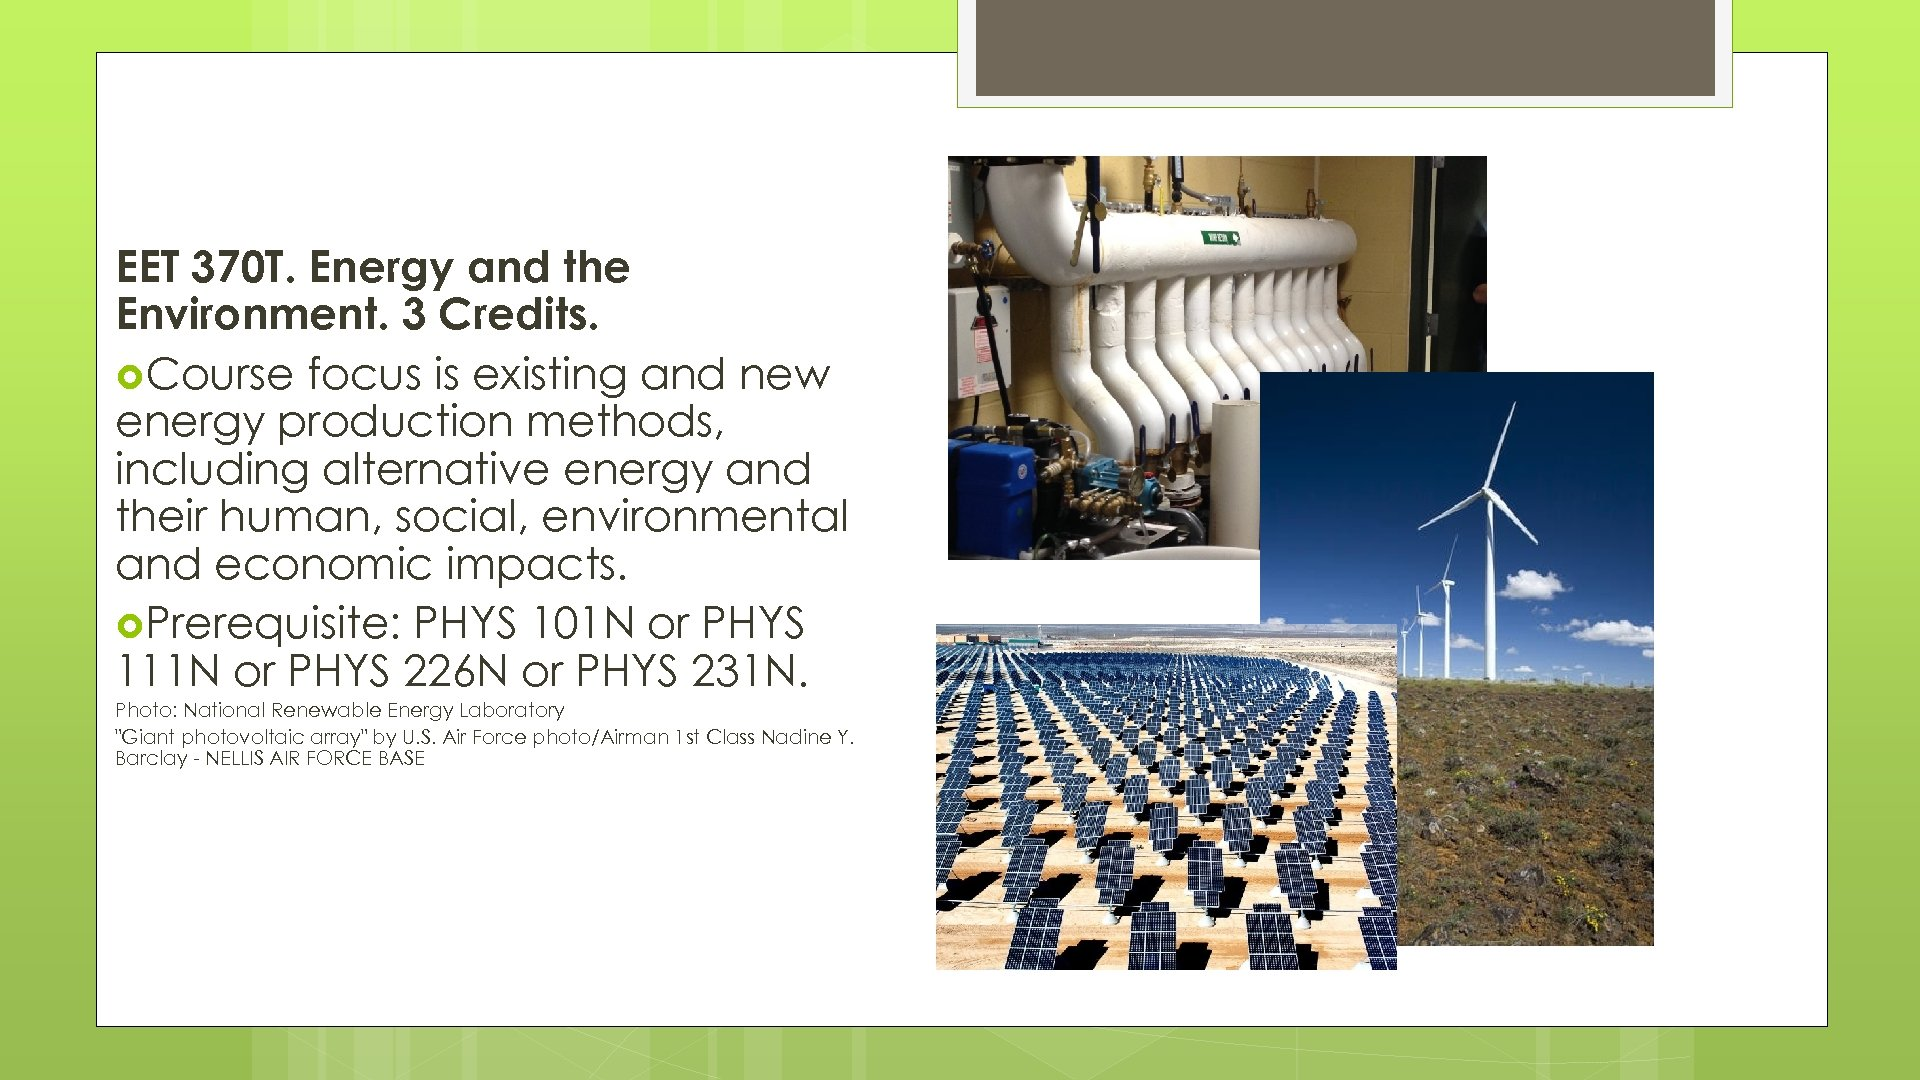 EET 370 T. Energy and the Environment. 3 Credits. Course focus is existing and